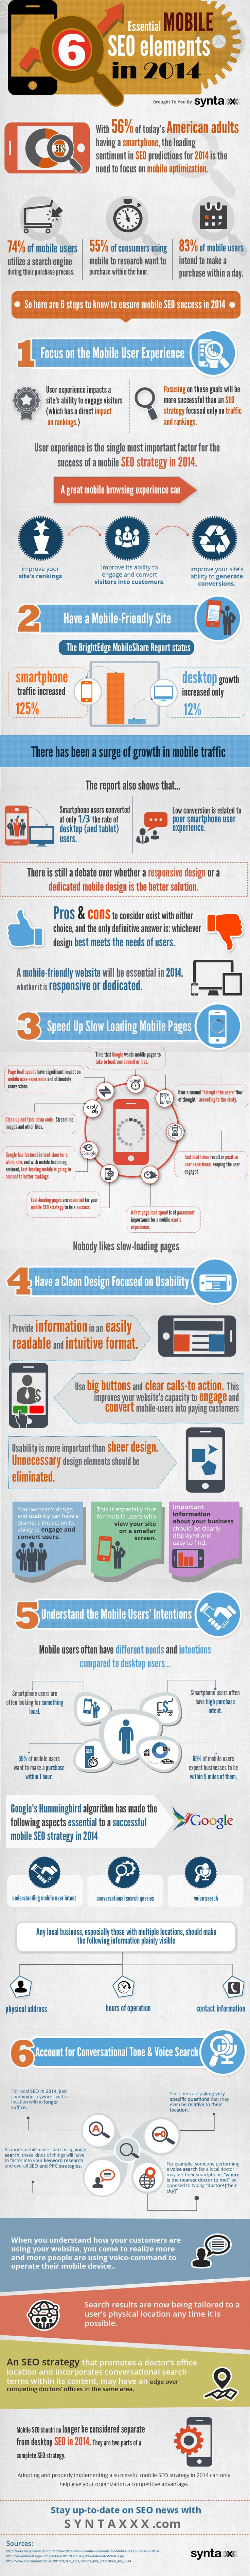 6 Essential Mobile SEO Elements In 2014   #SEO #MOBILE #Infographic